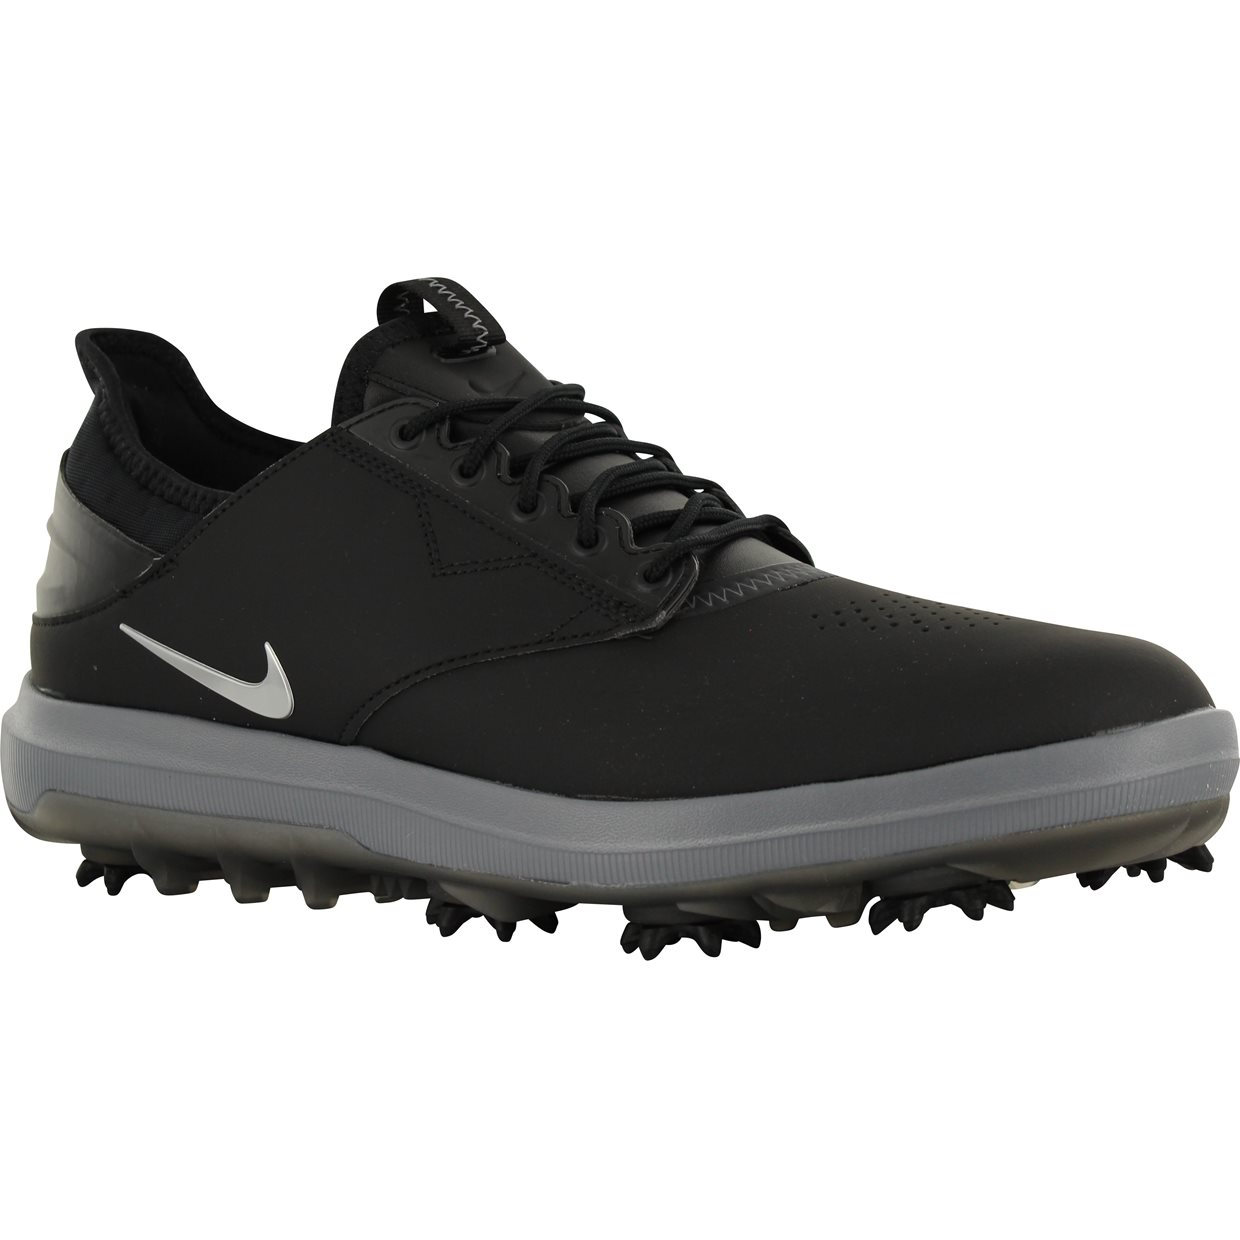 714d96deebb Nike Air Zoom Direct Golf Shoe. Drag 360 Left or Right to View. Alternate  Product Image View 1 ...